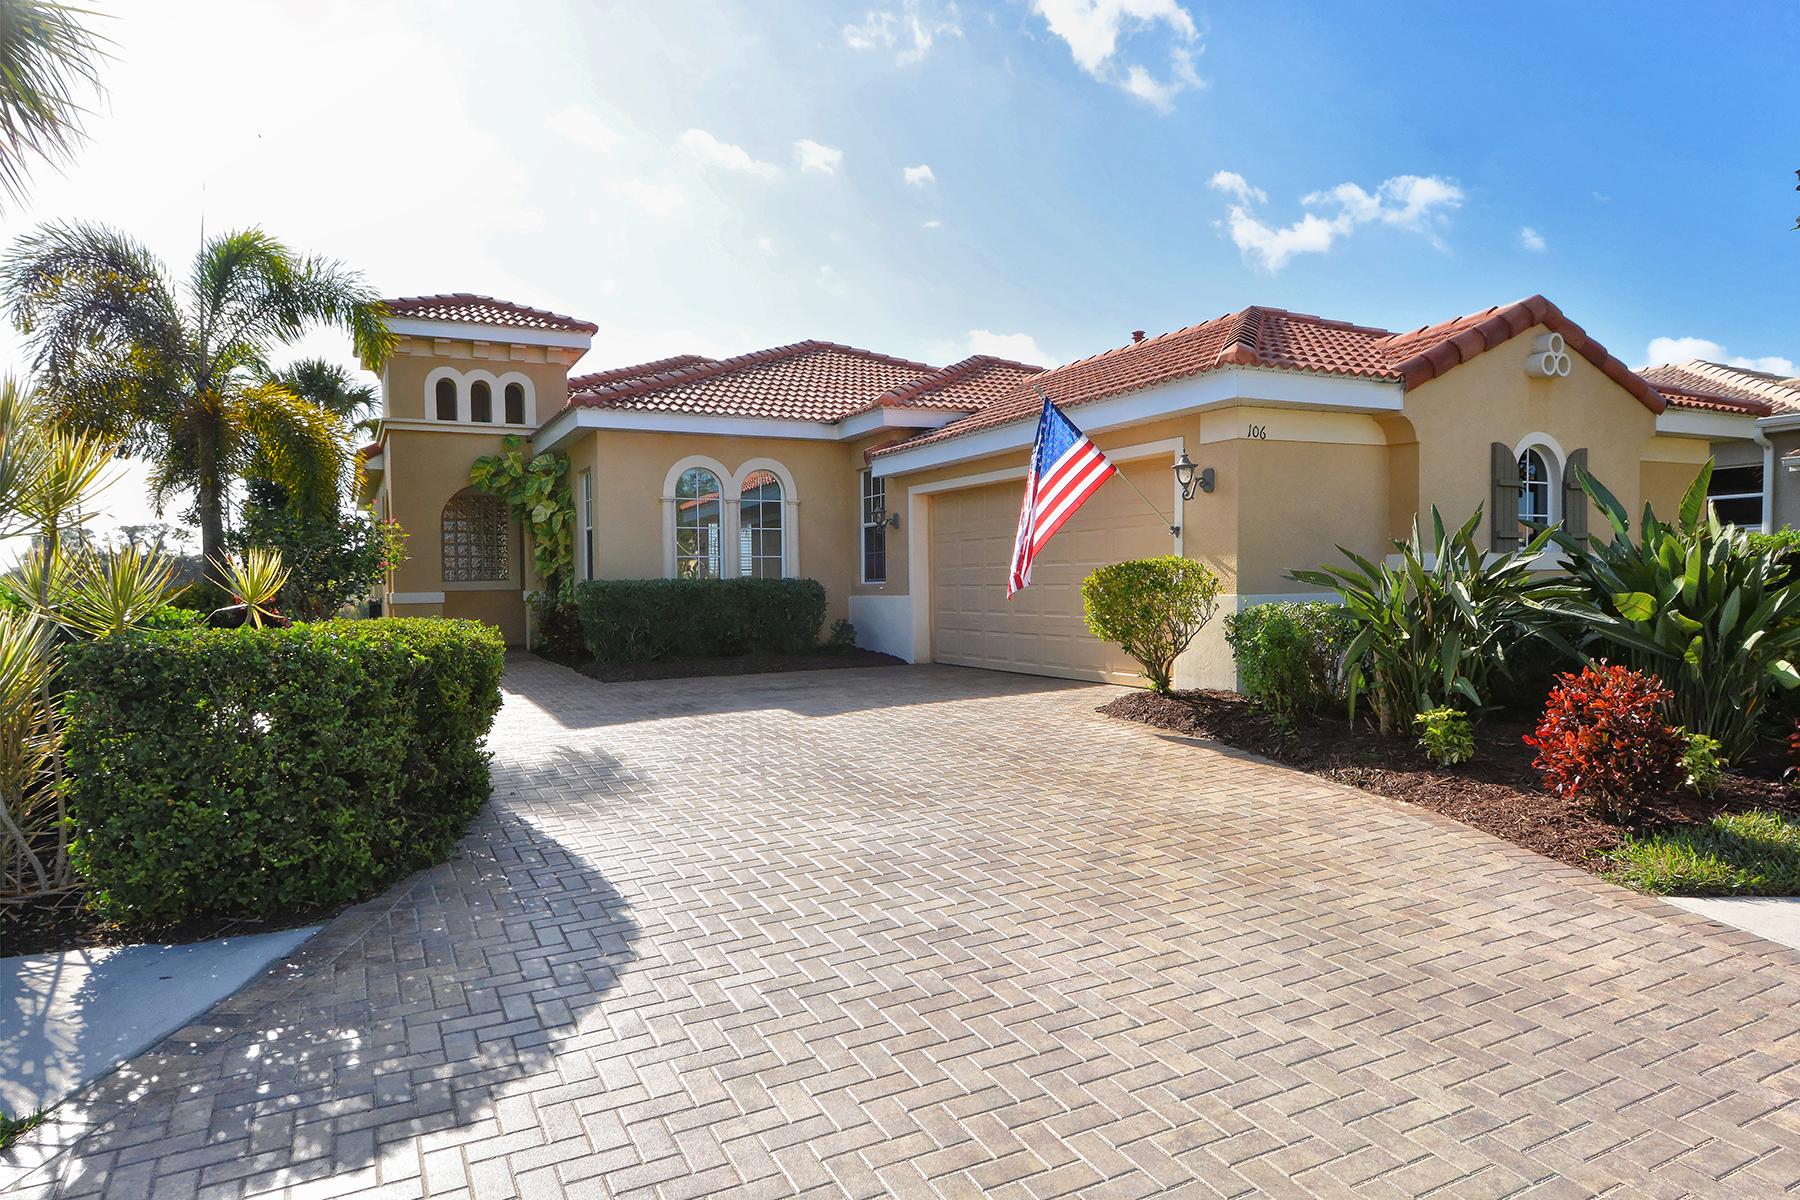 Vivienda unifamiliar por un Venta en VENETIAN GOLF & RIVER CLUB 106 Cipriani Ct North Venice, Florida, 34275 Estados Unidos